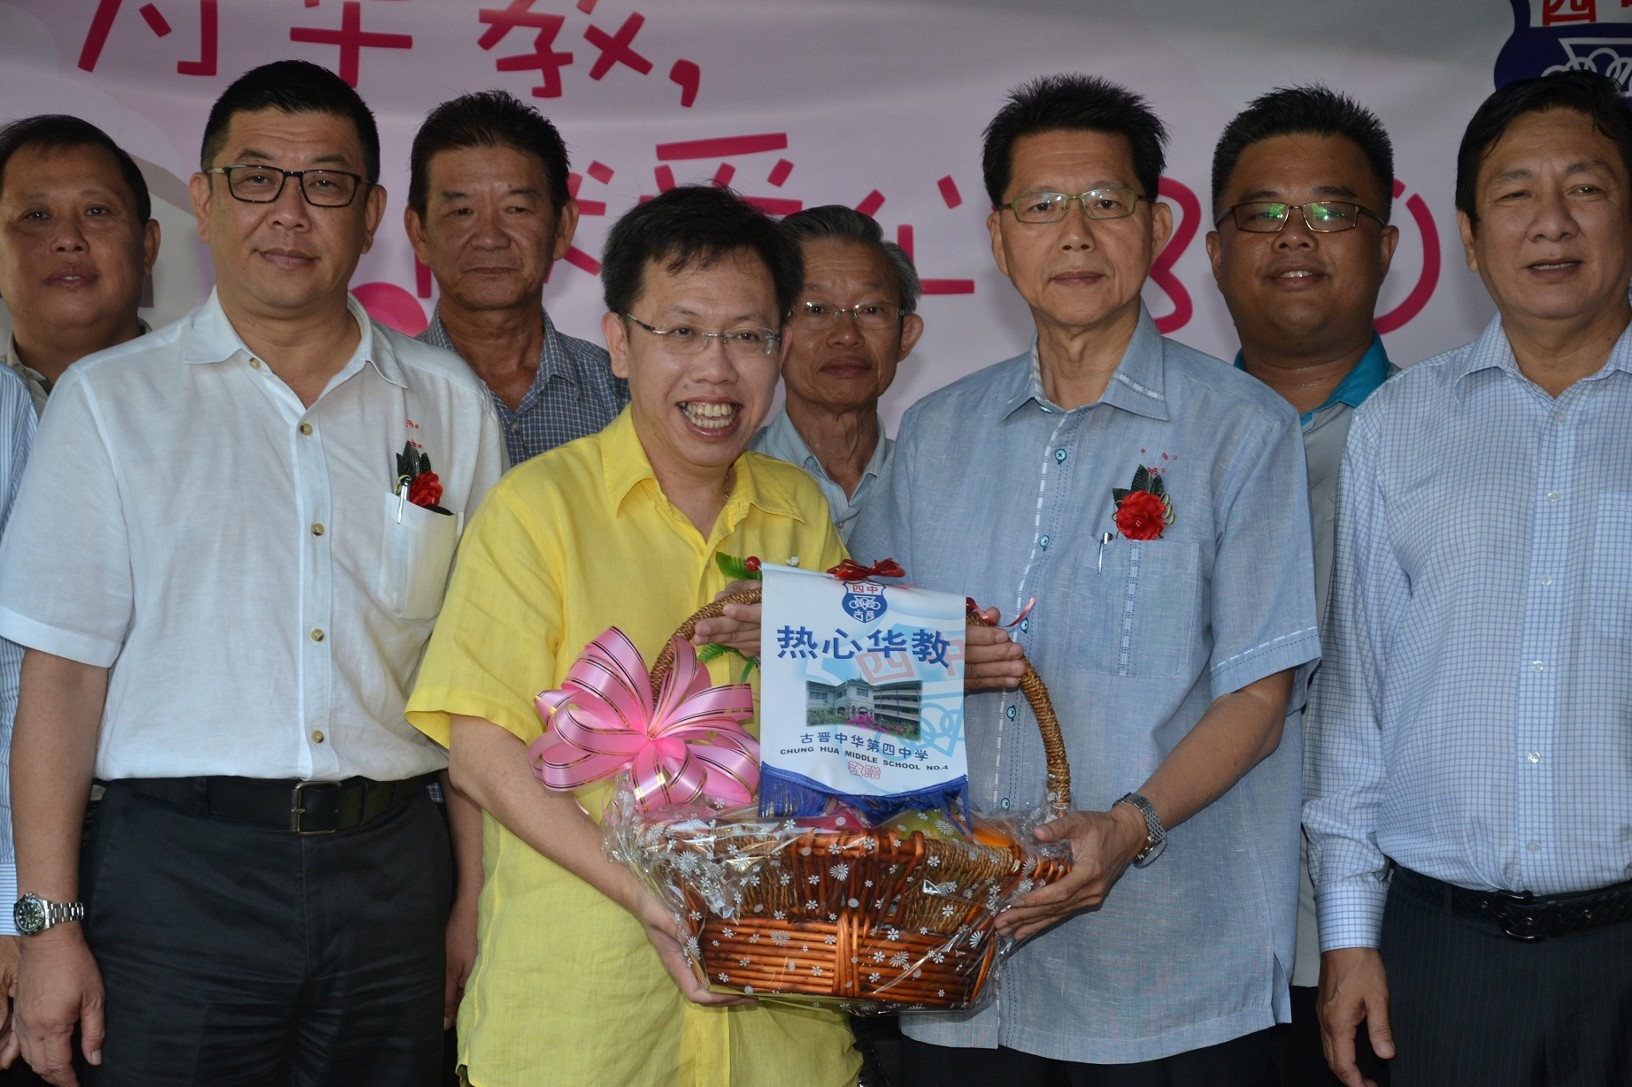 Senator Datuk Sim receiving a souvenir from organising chairman, Sim Zu Peng .